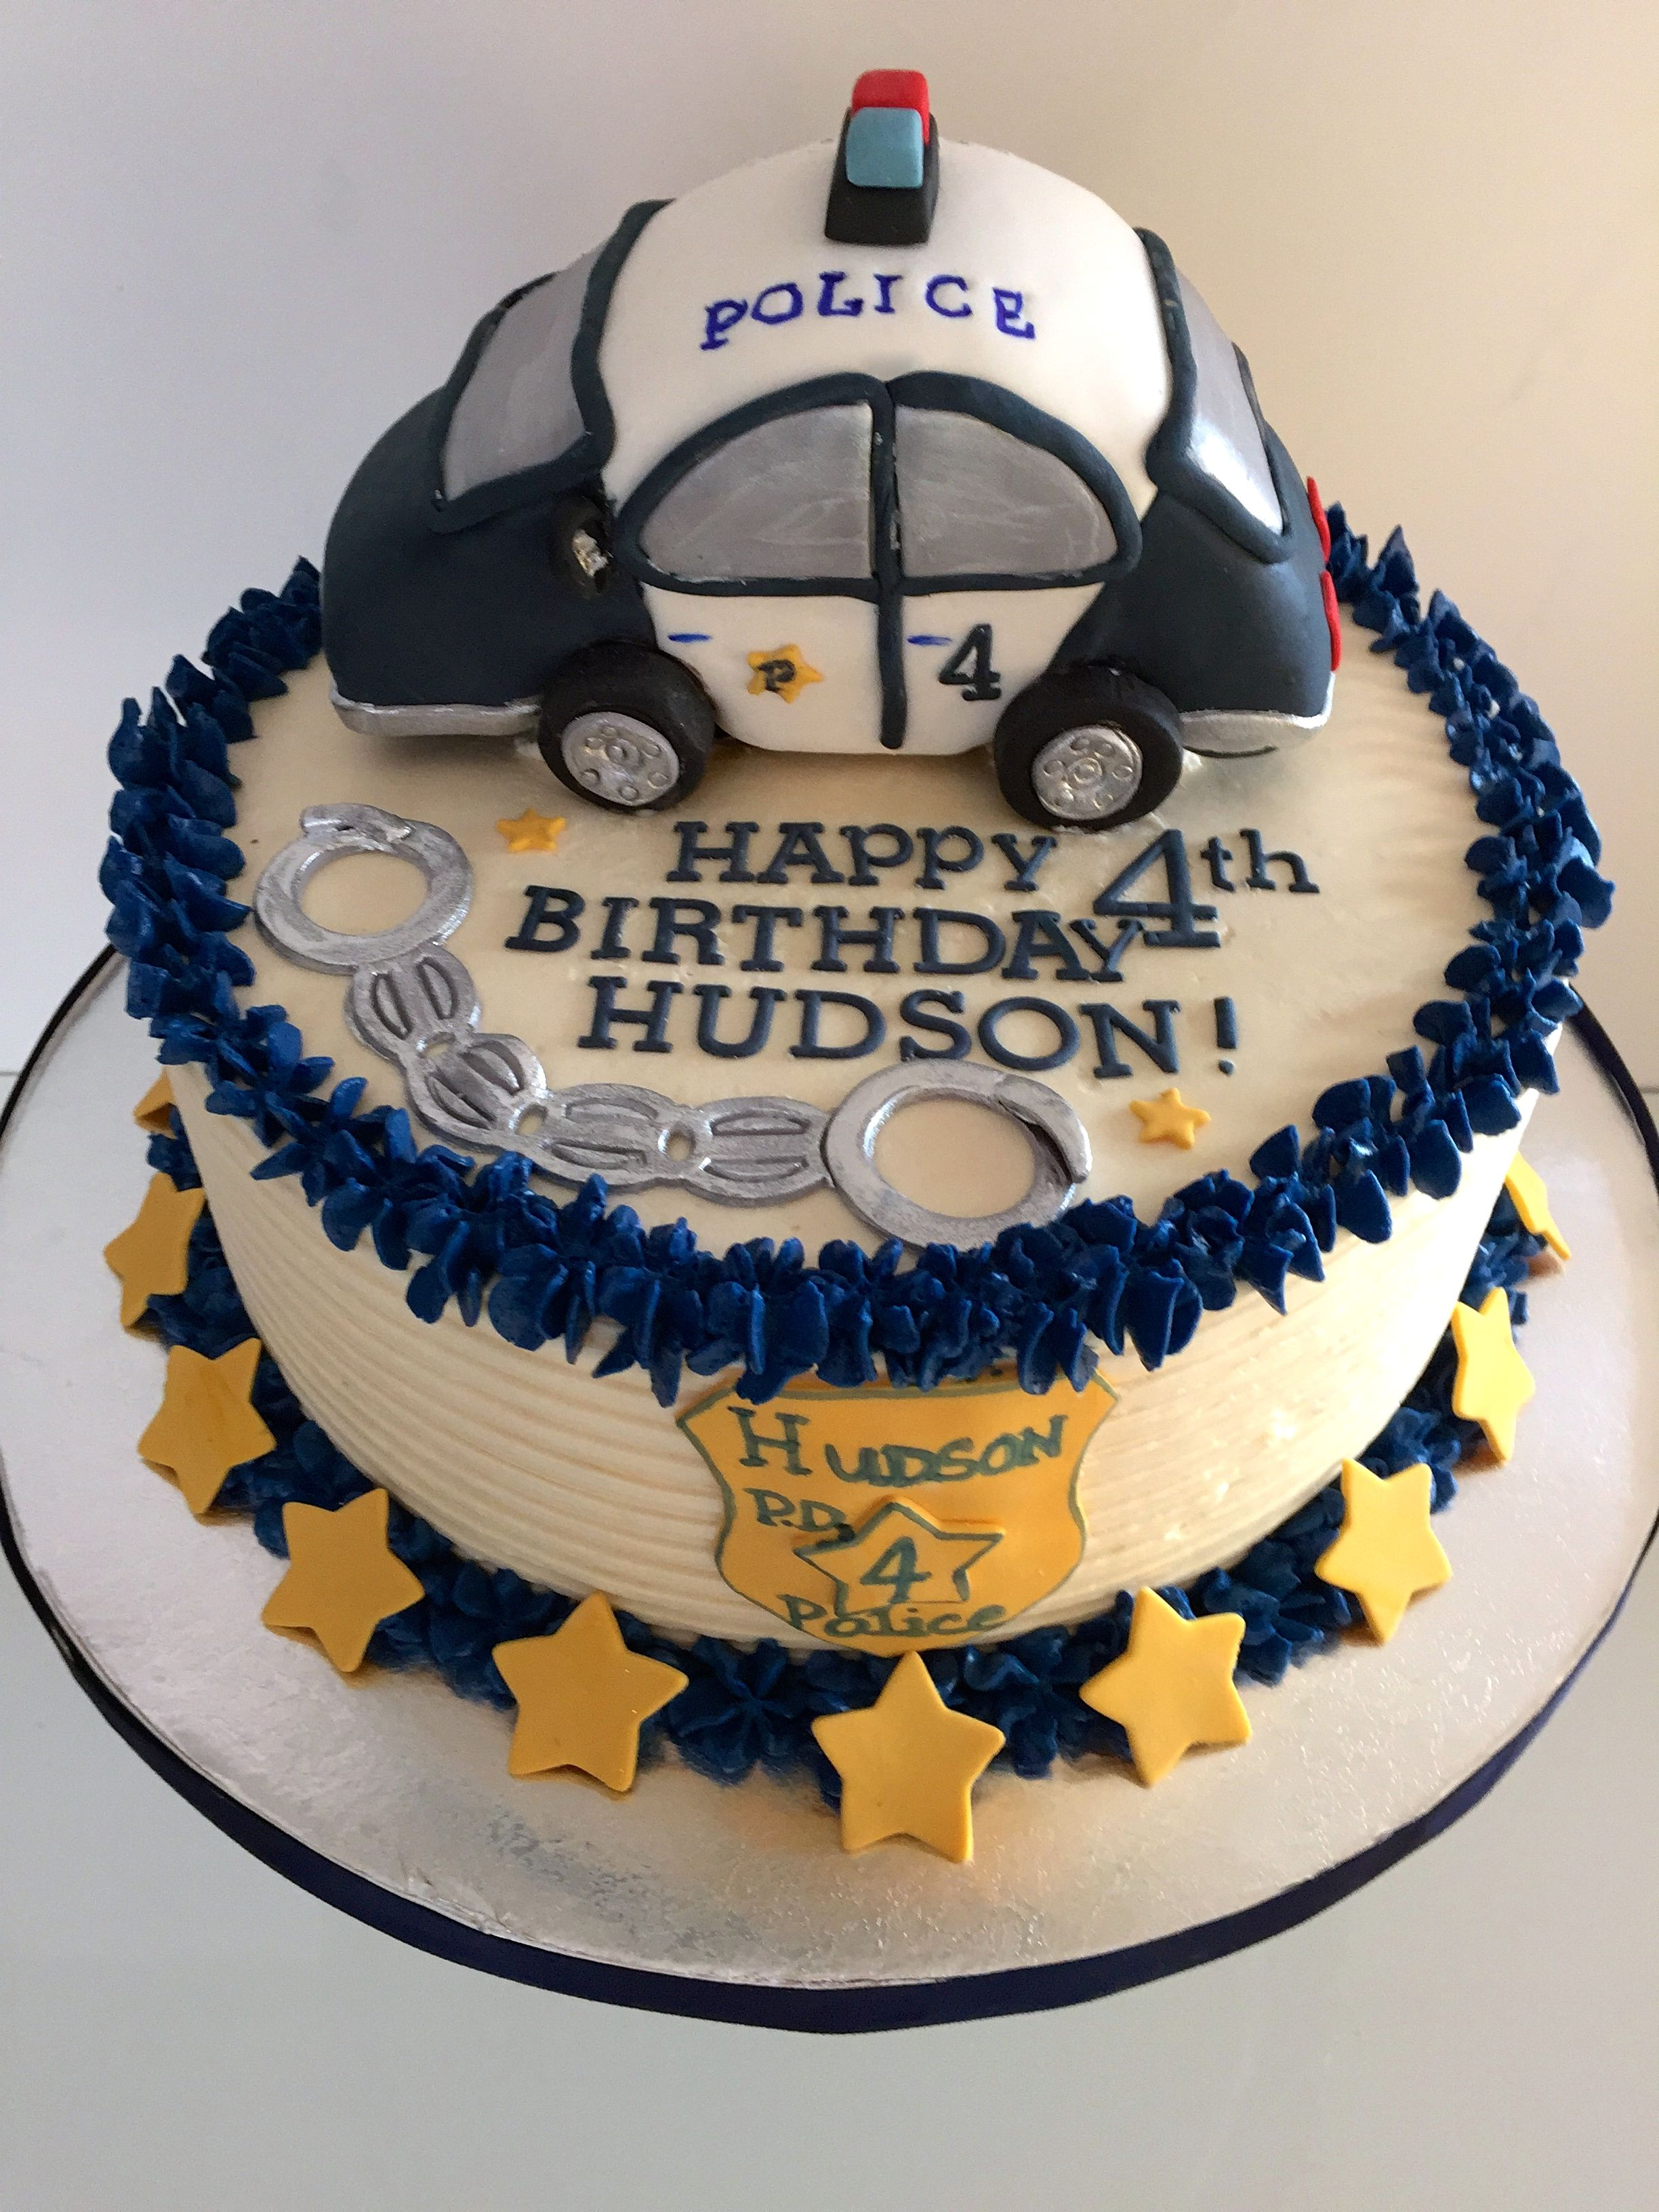 Magnificent Policecake Carcake Sugar Police Car With Sugar Badge Handcuffs Funny Birthday Cards Online Alyptdamsfinfo